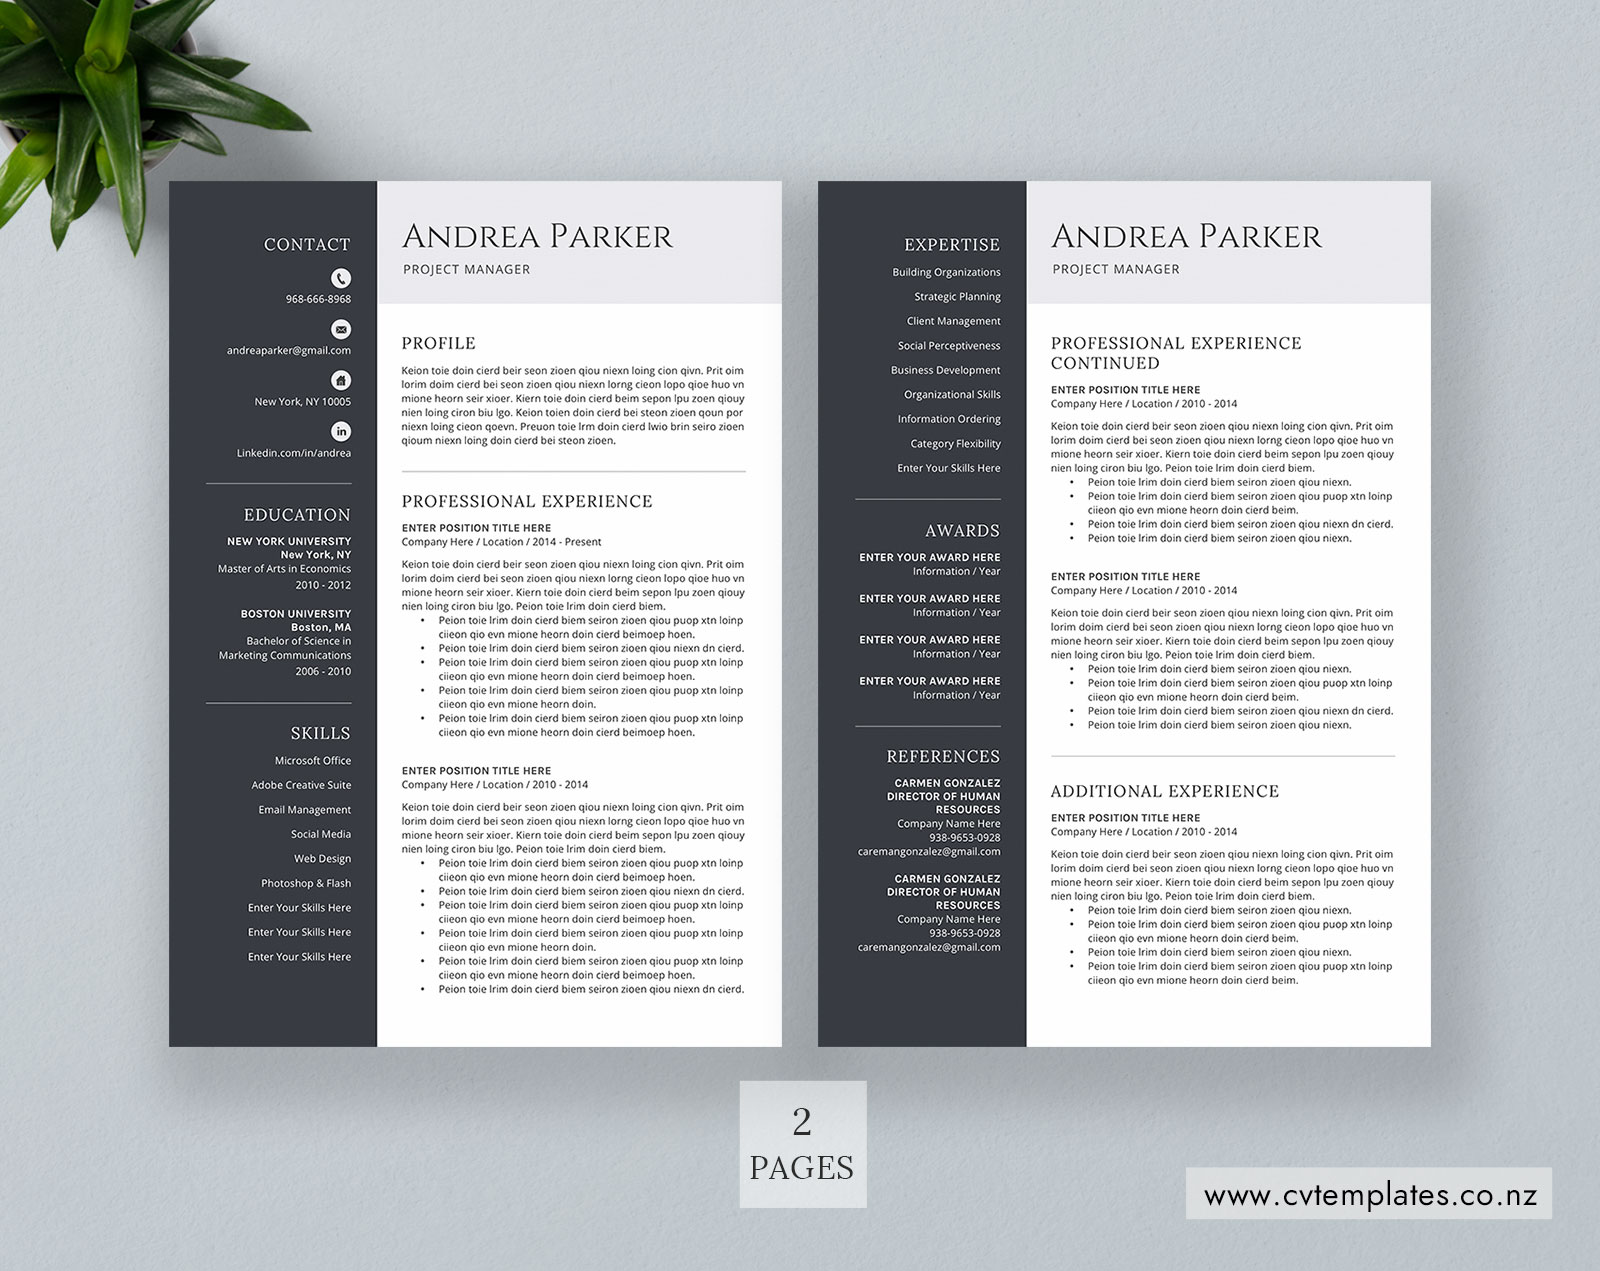 cv bundle  cv templates  professional curriculum vitae  ms word cv template  minimalist cv